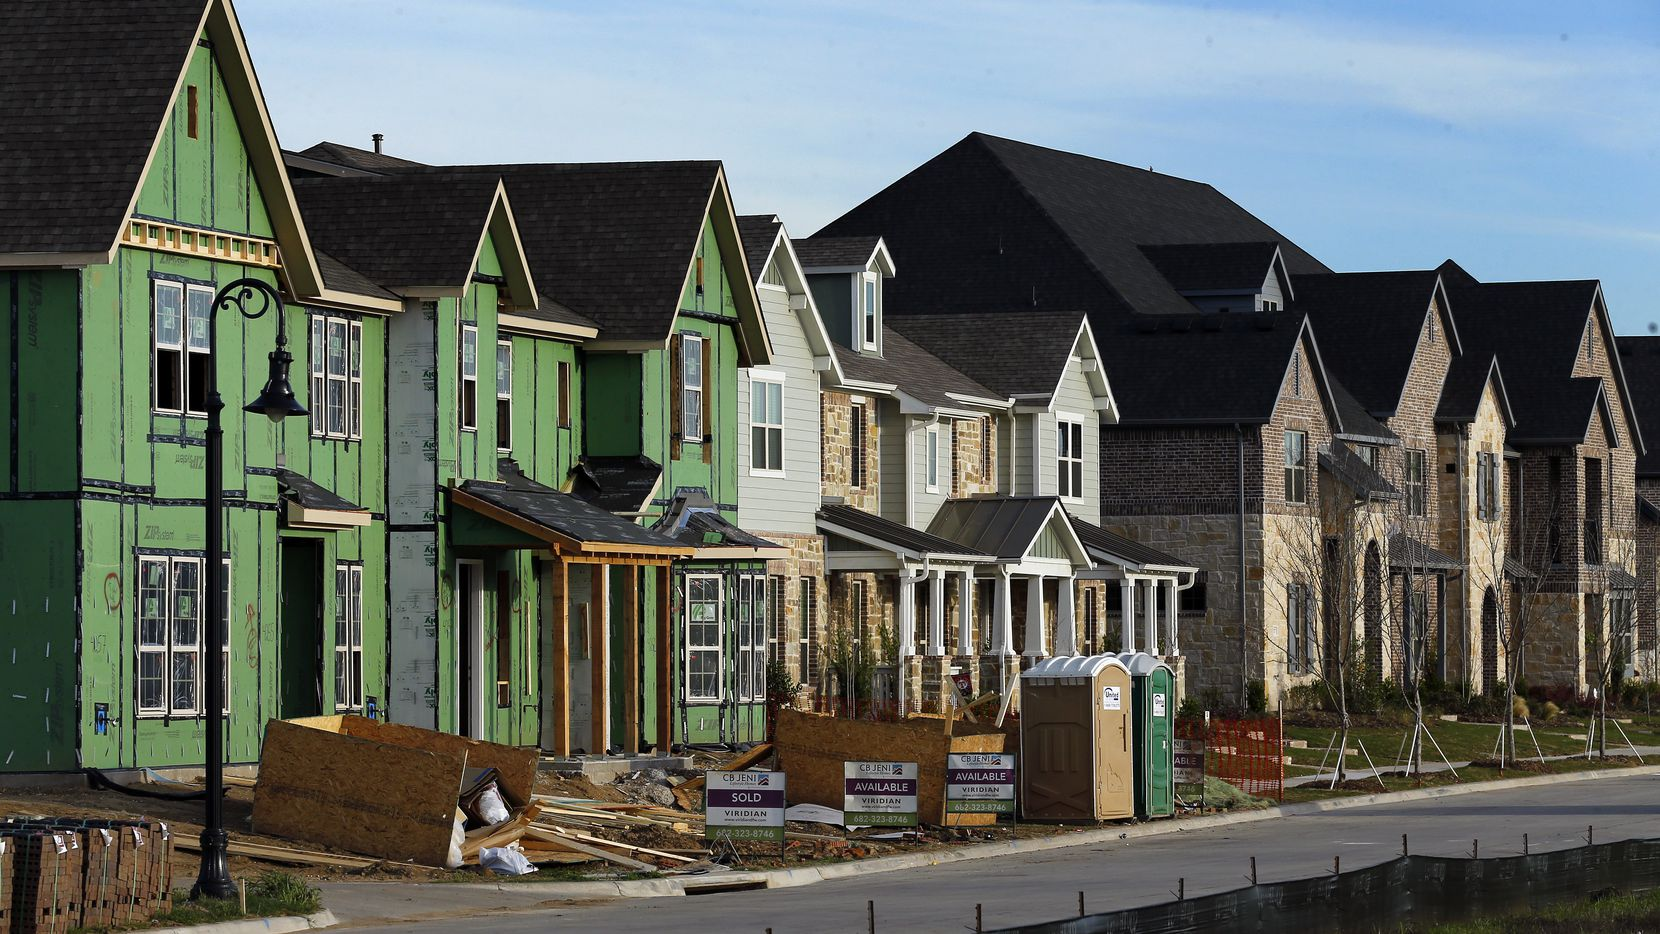 The new phase will be for houses priced from more than $300,000 to over $1 million.